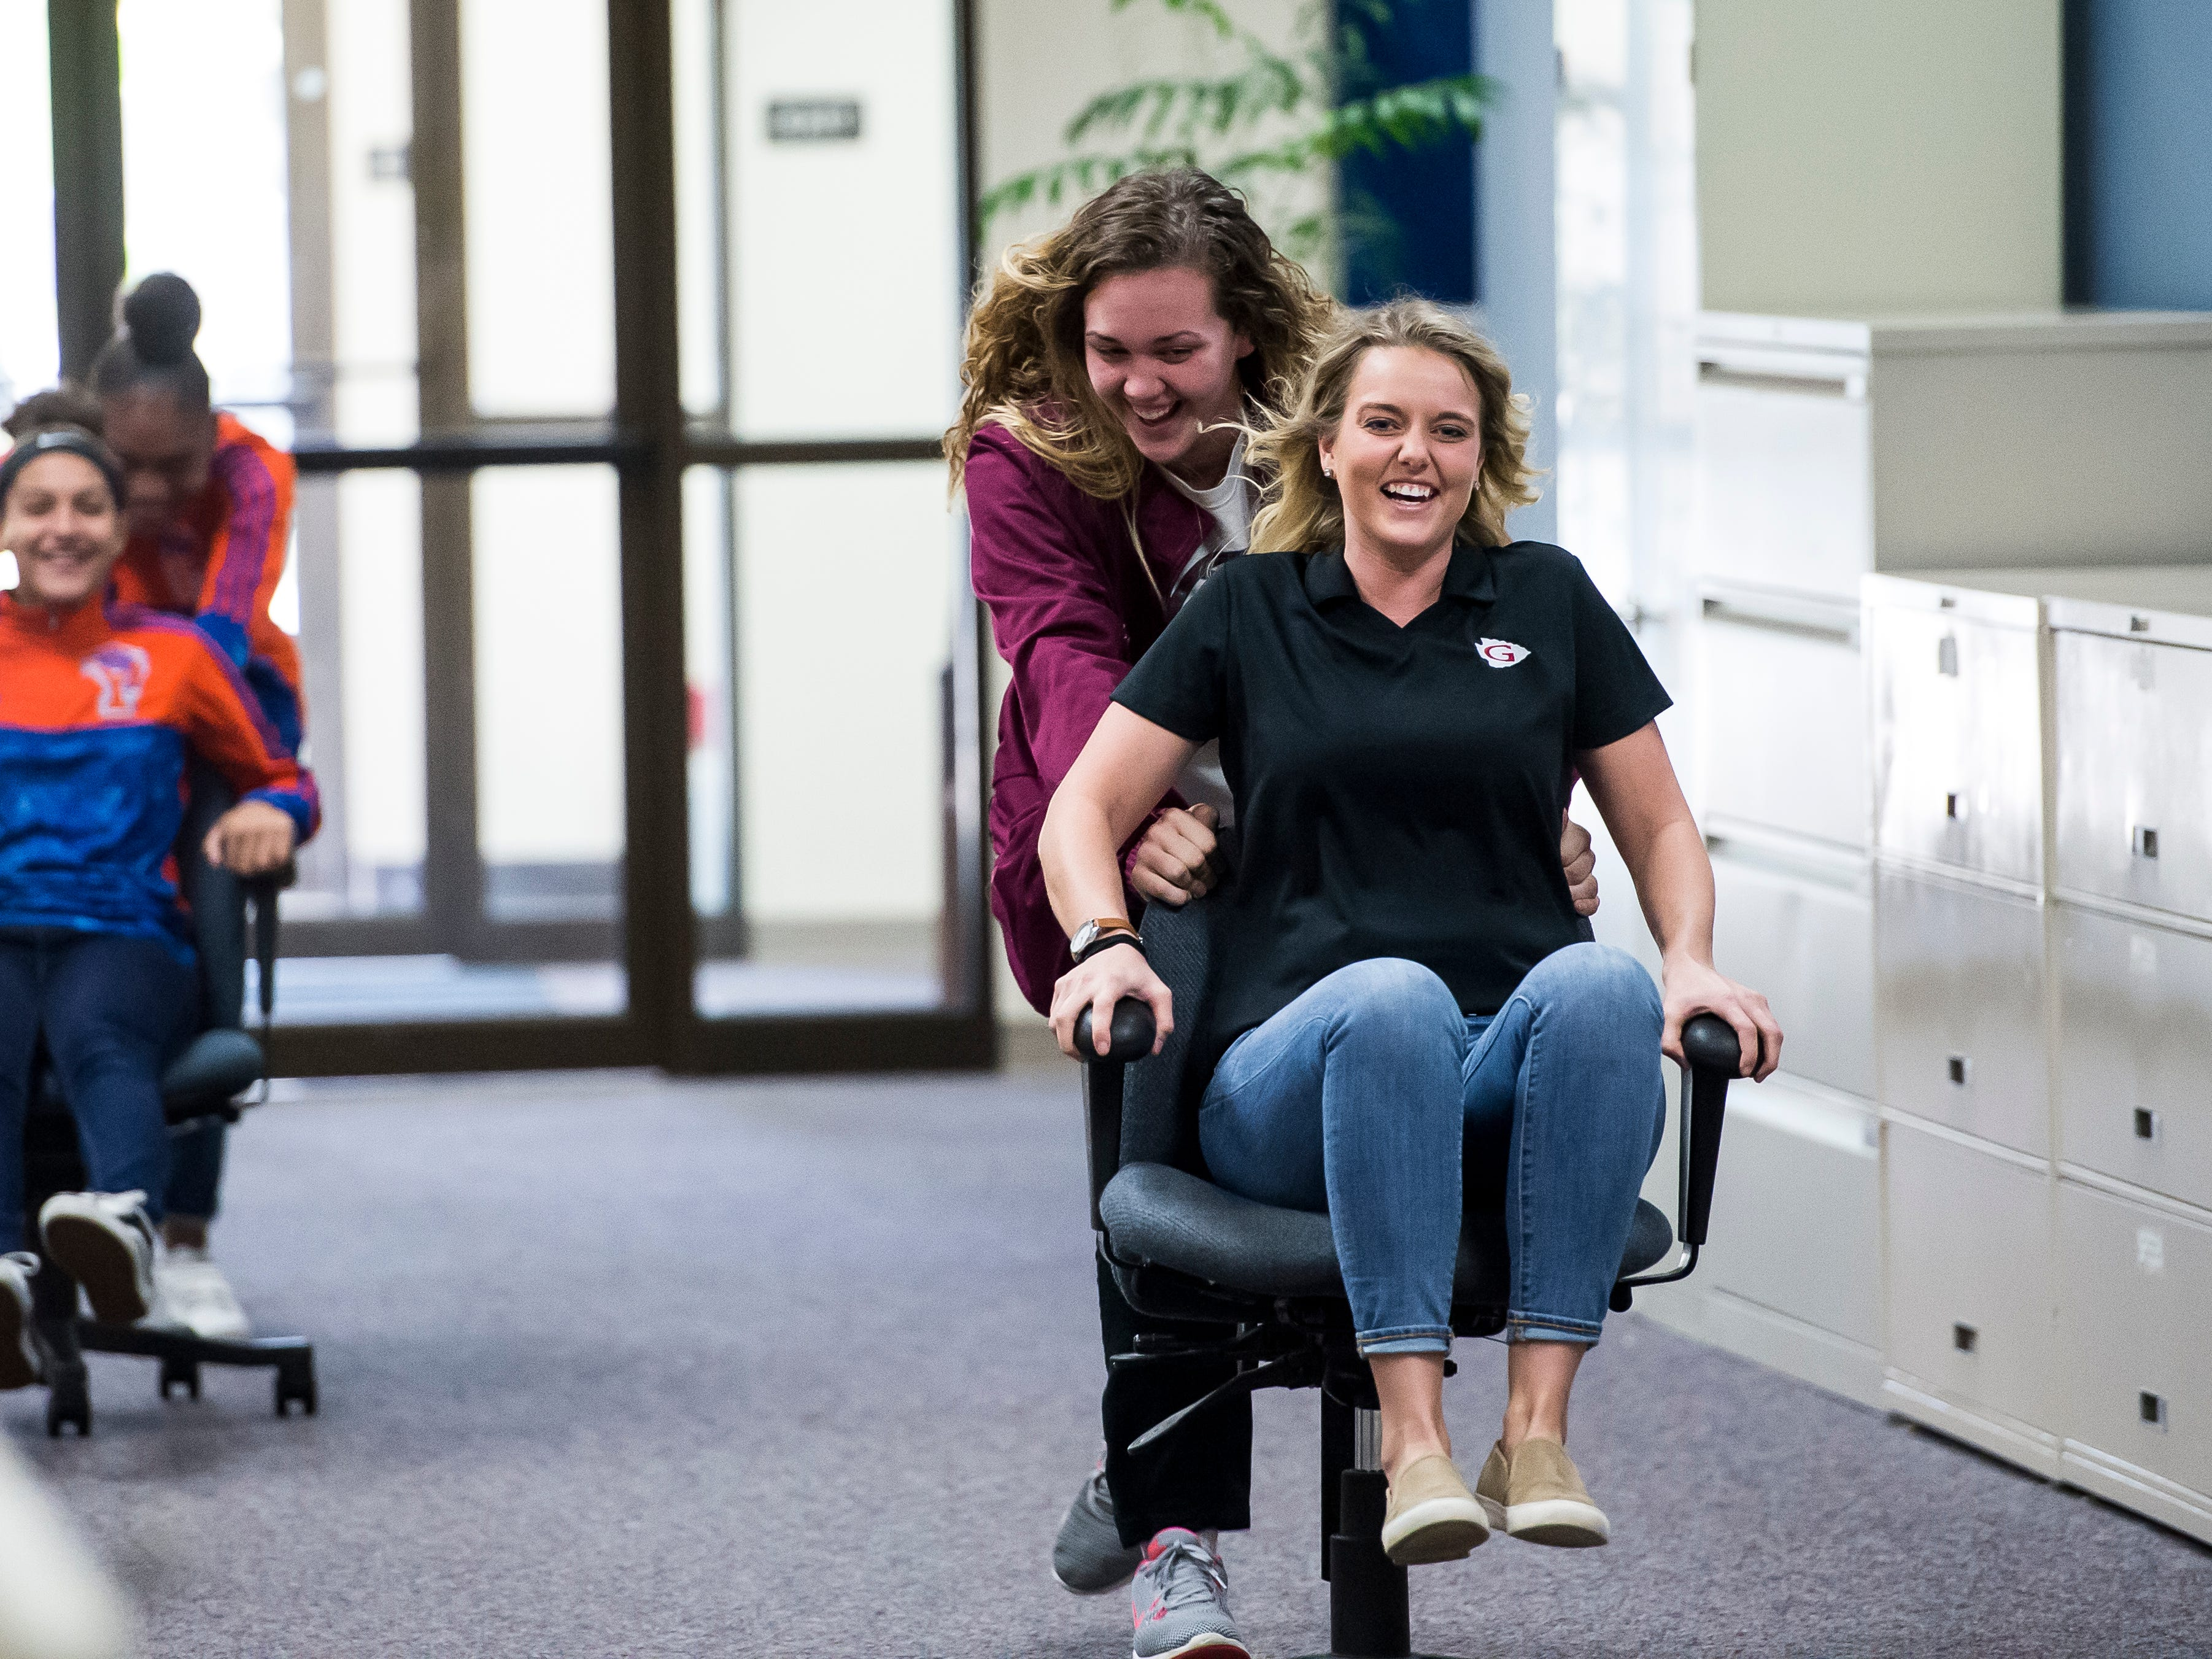 Gettysburg Area High School basketball player Taylor Richardson pushes coach Lauren Nell during an office chair race at the GameTimePa winter sports media day in York on Sunday, November 11, 2018.